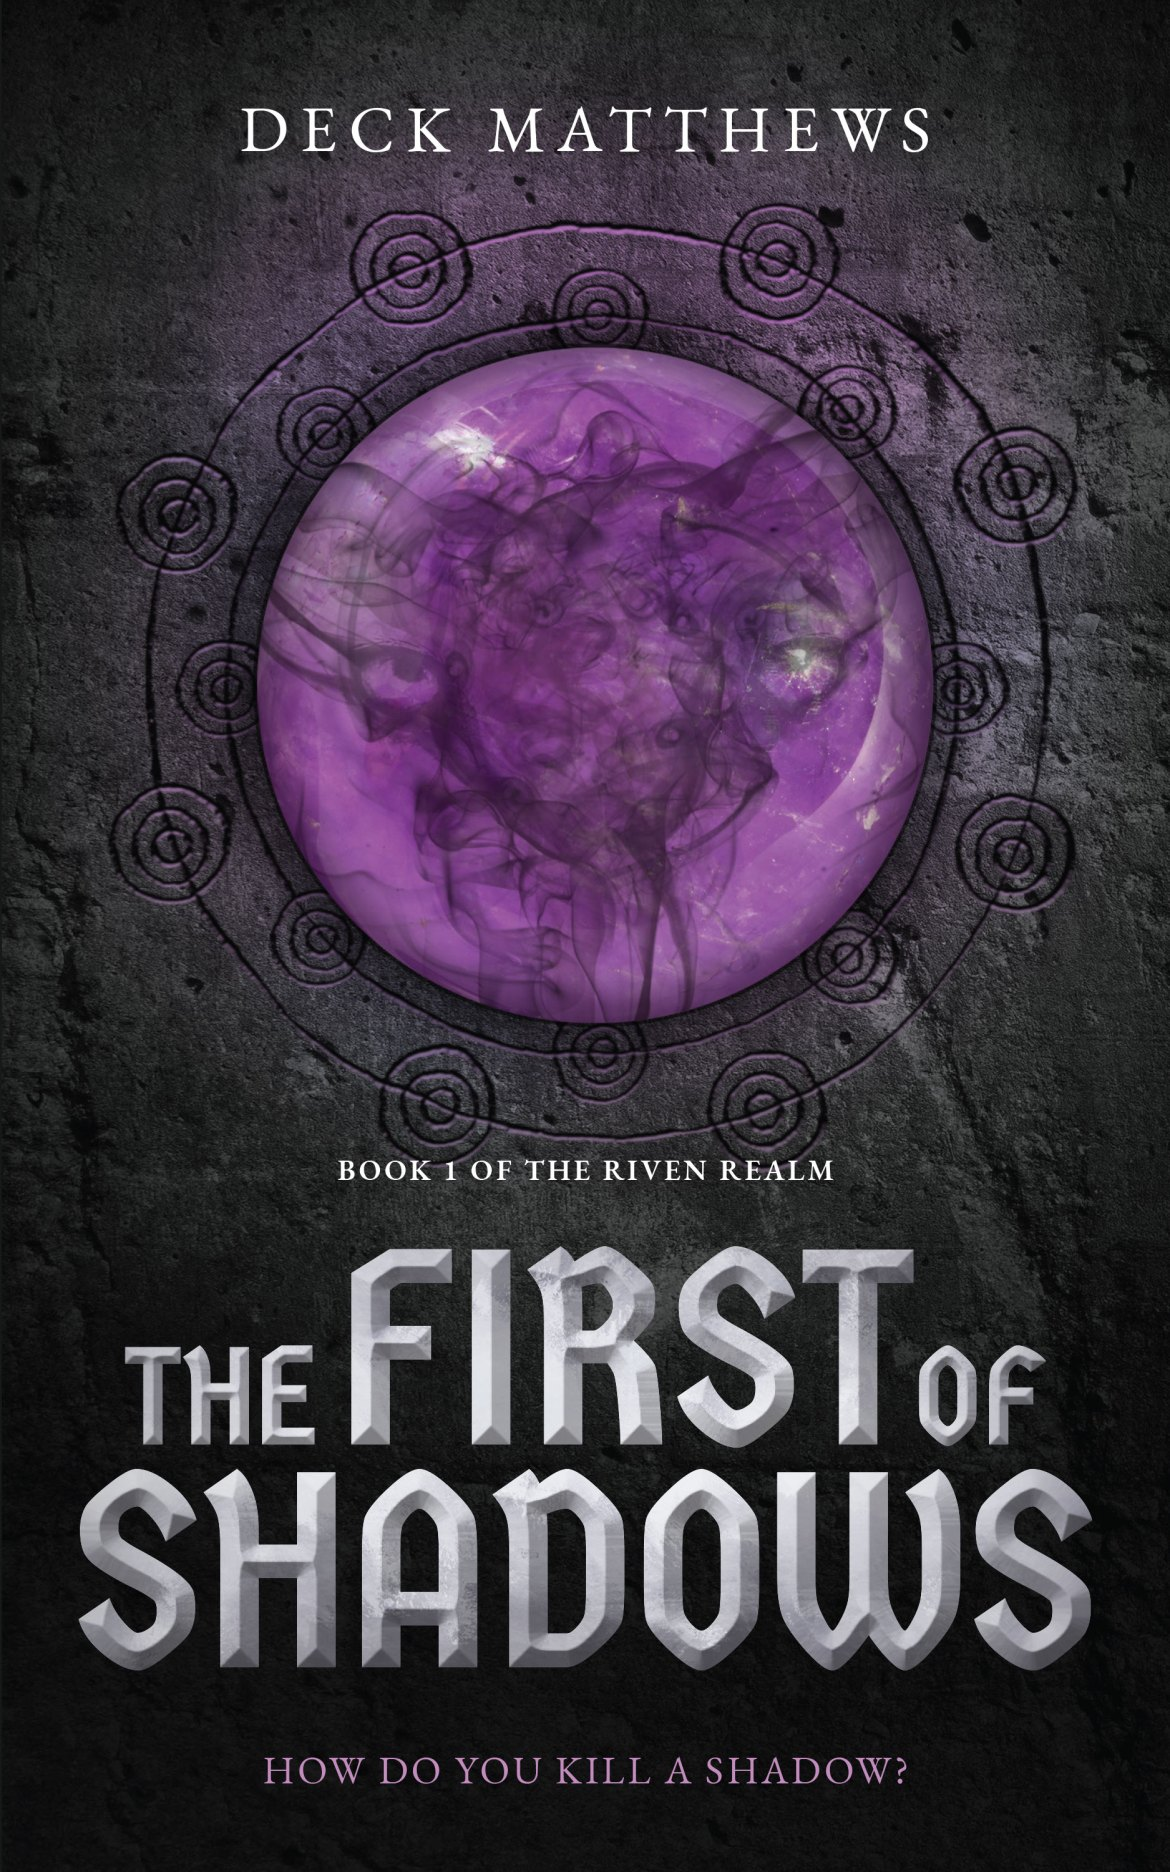 The First of Shadows by Deck Matthews